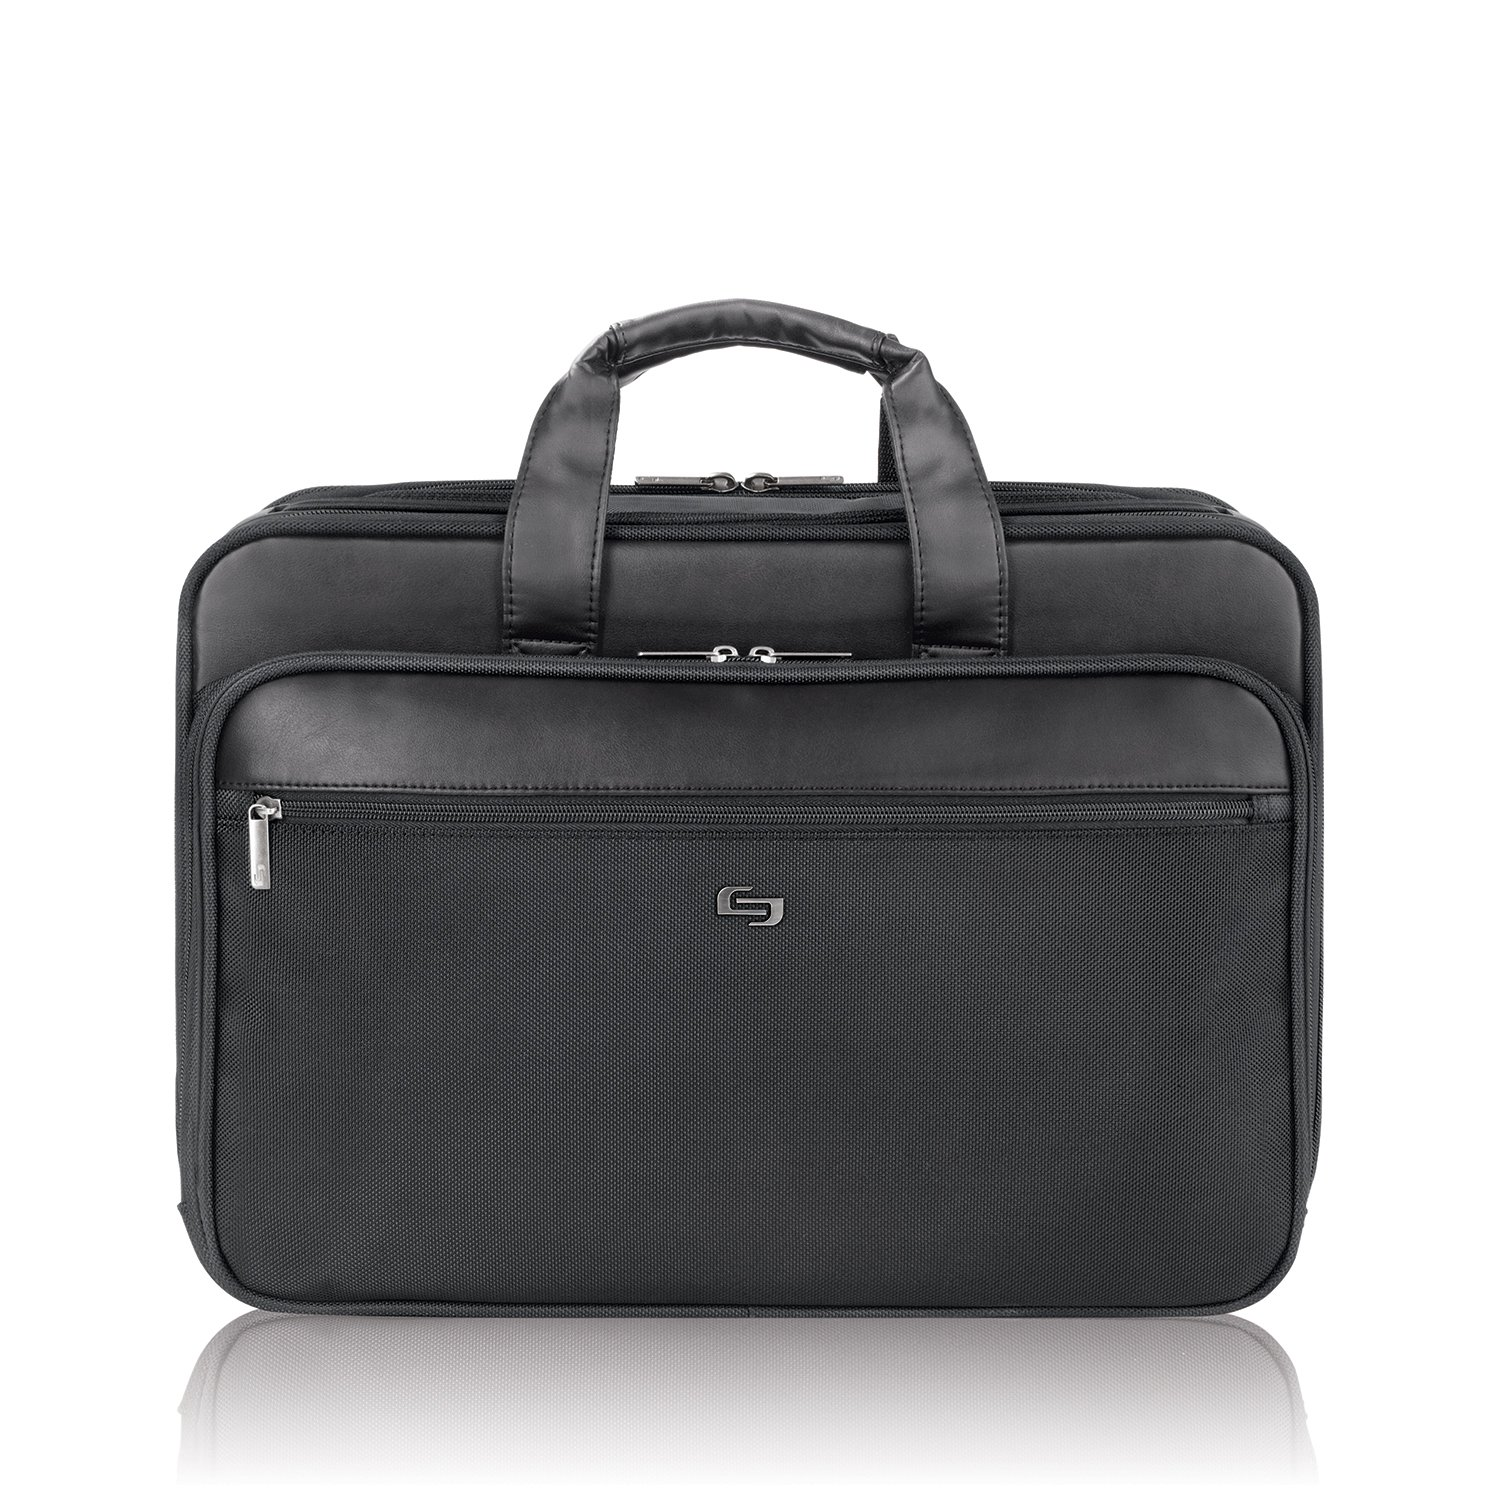 Solo Paramount 16 Inch Laptop Briefcase with Smart Strap, Black by SOLO